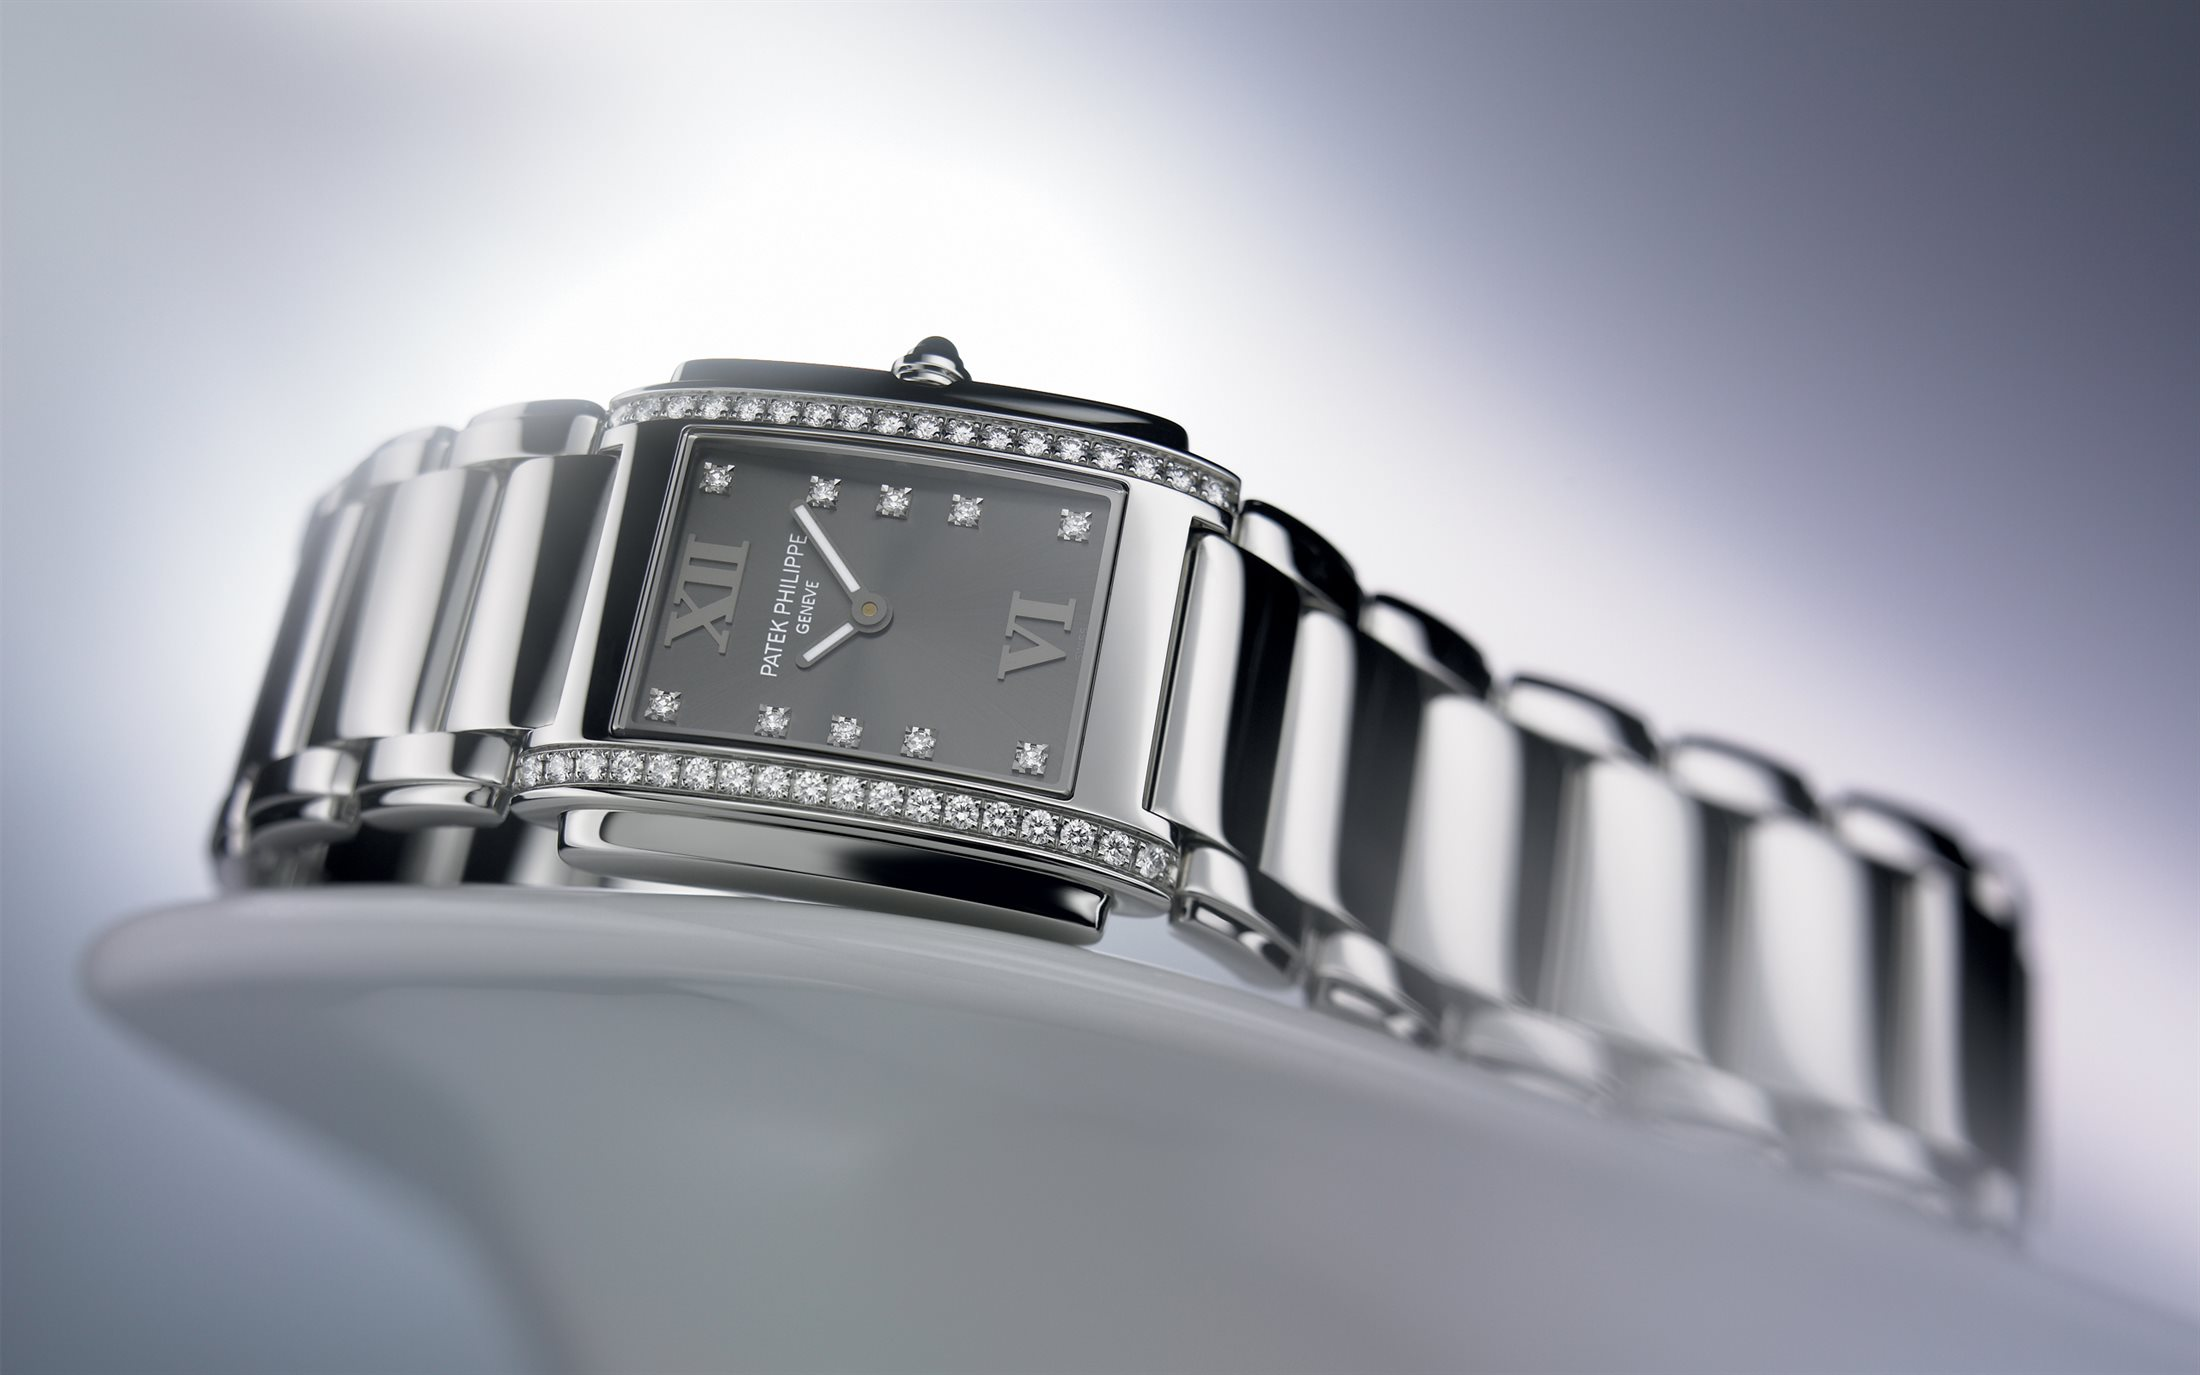 8dda1f4d977 The Patek Philippe Twenty-4 as we knew it until today – rectangular, small,  bracelet-like and battery-powered. Here is the steel version, ref.